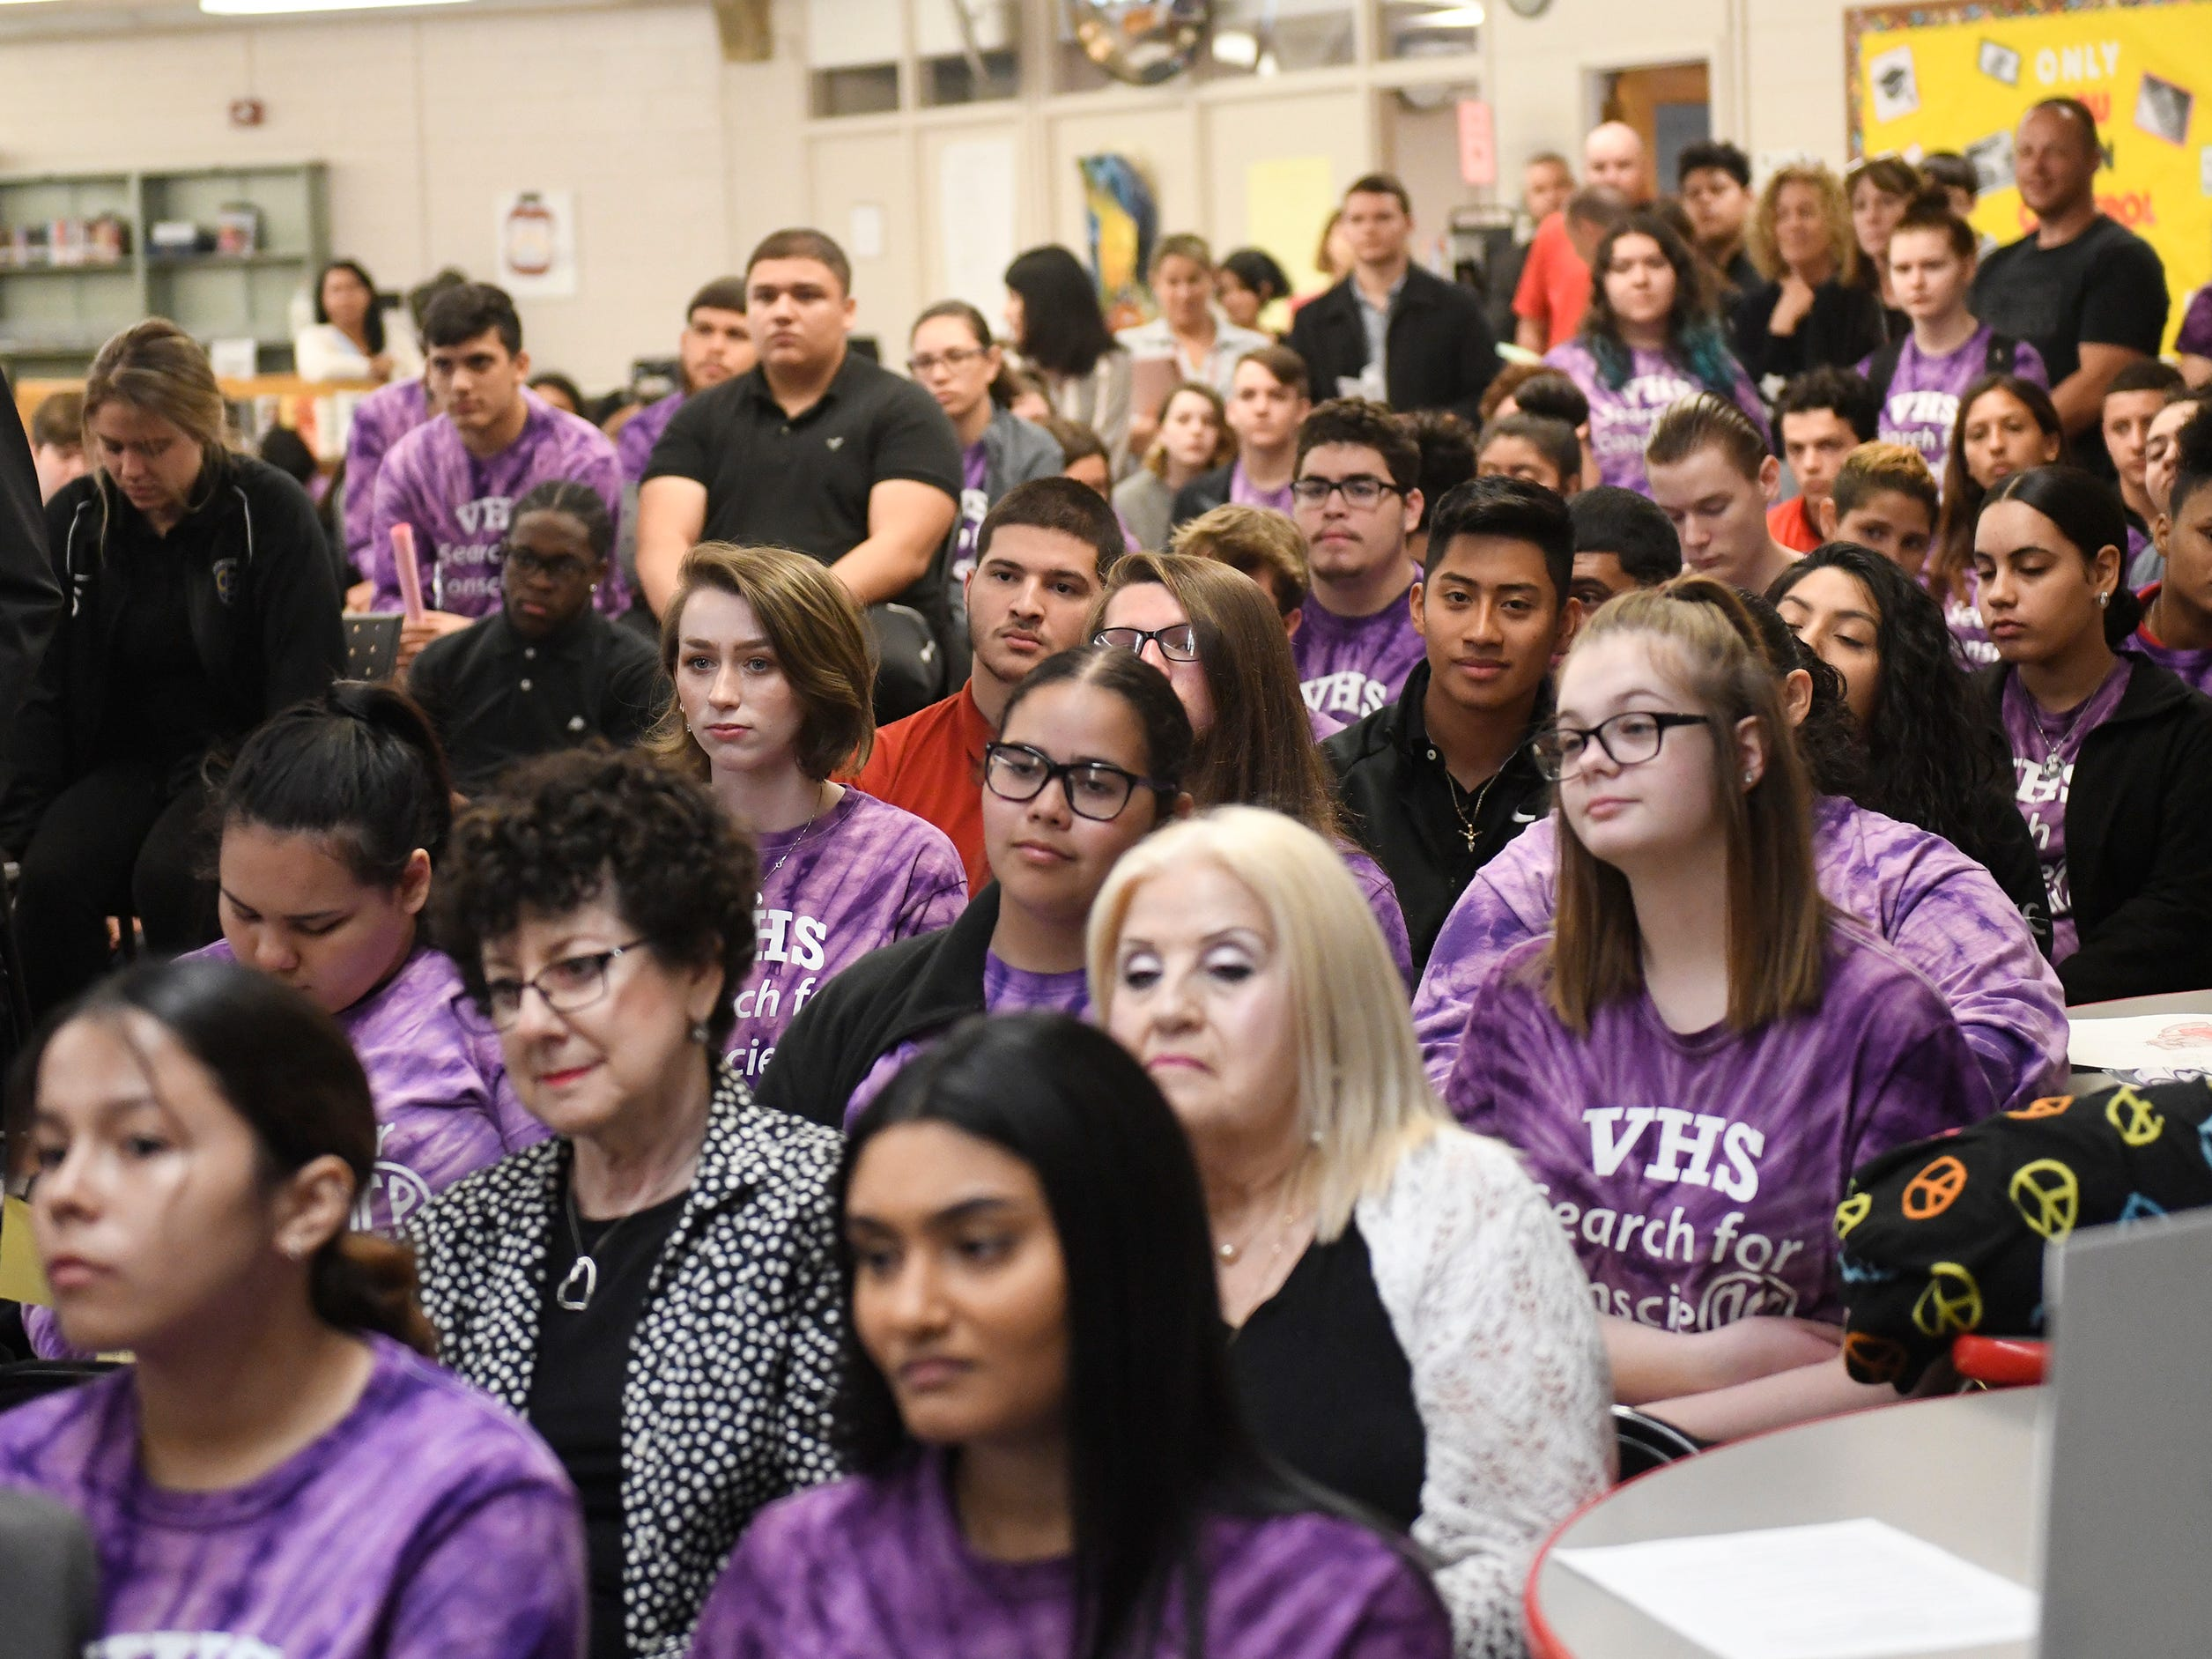 Vineland High School Search for Conscience students, purple shirts, attend the permanent exhibit dedication for Vineland Holocaust survivors in the school library on Wednesday, May 8, 2019.